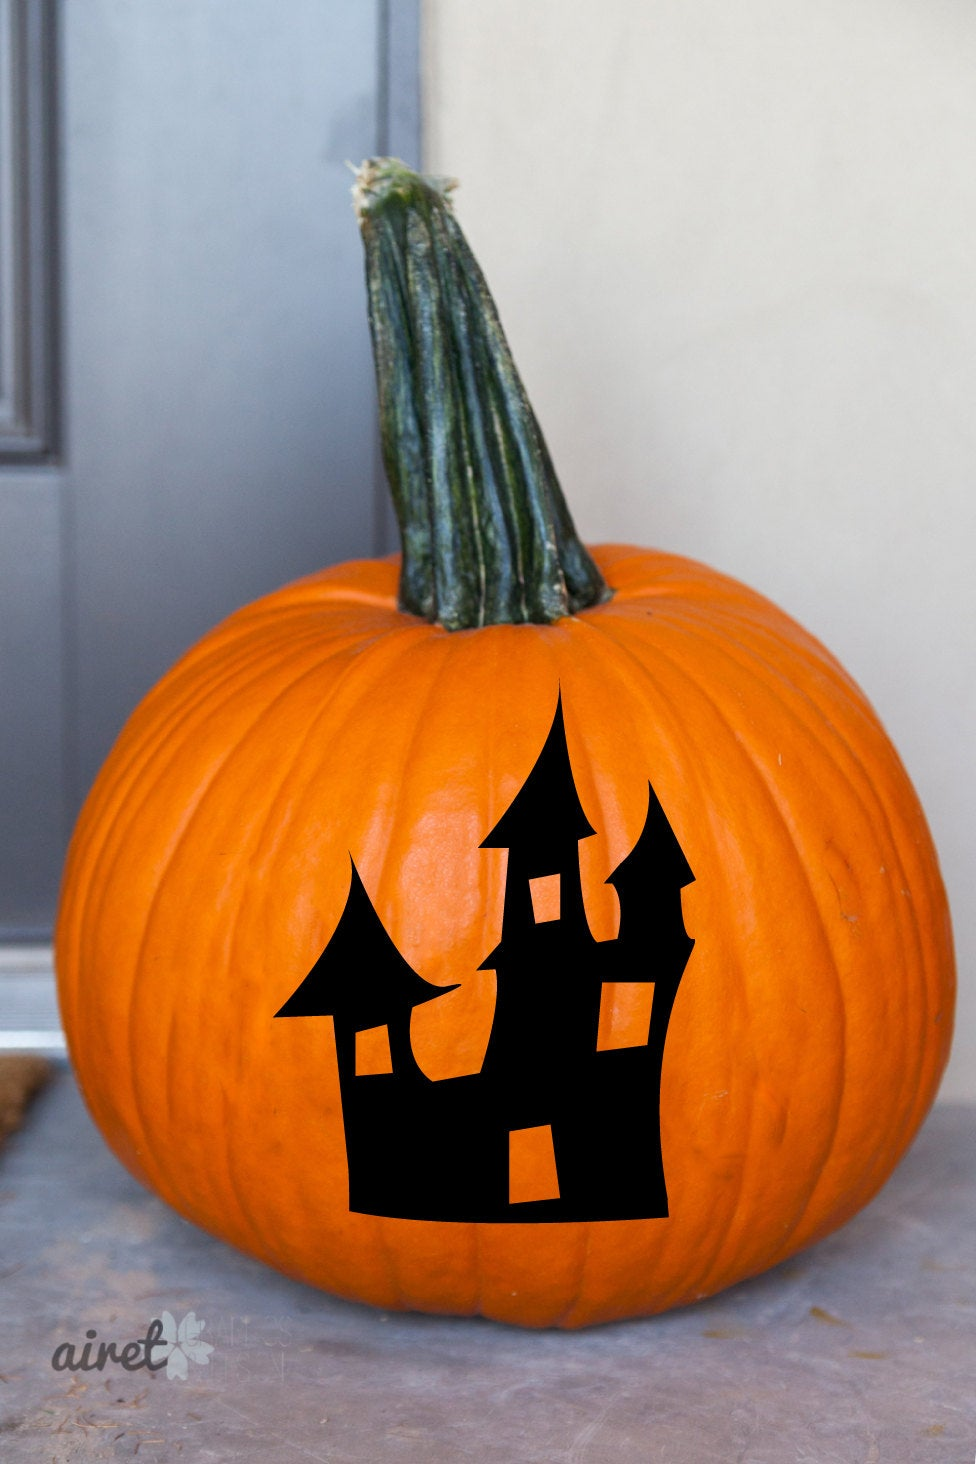 Haunted House Halloween Fall Autumn Decor Pumpkin Decal Vinyl Sticker